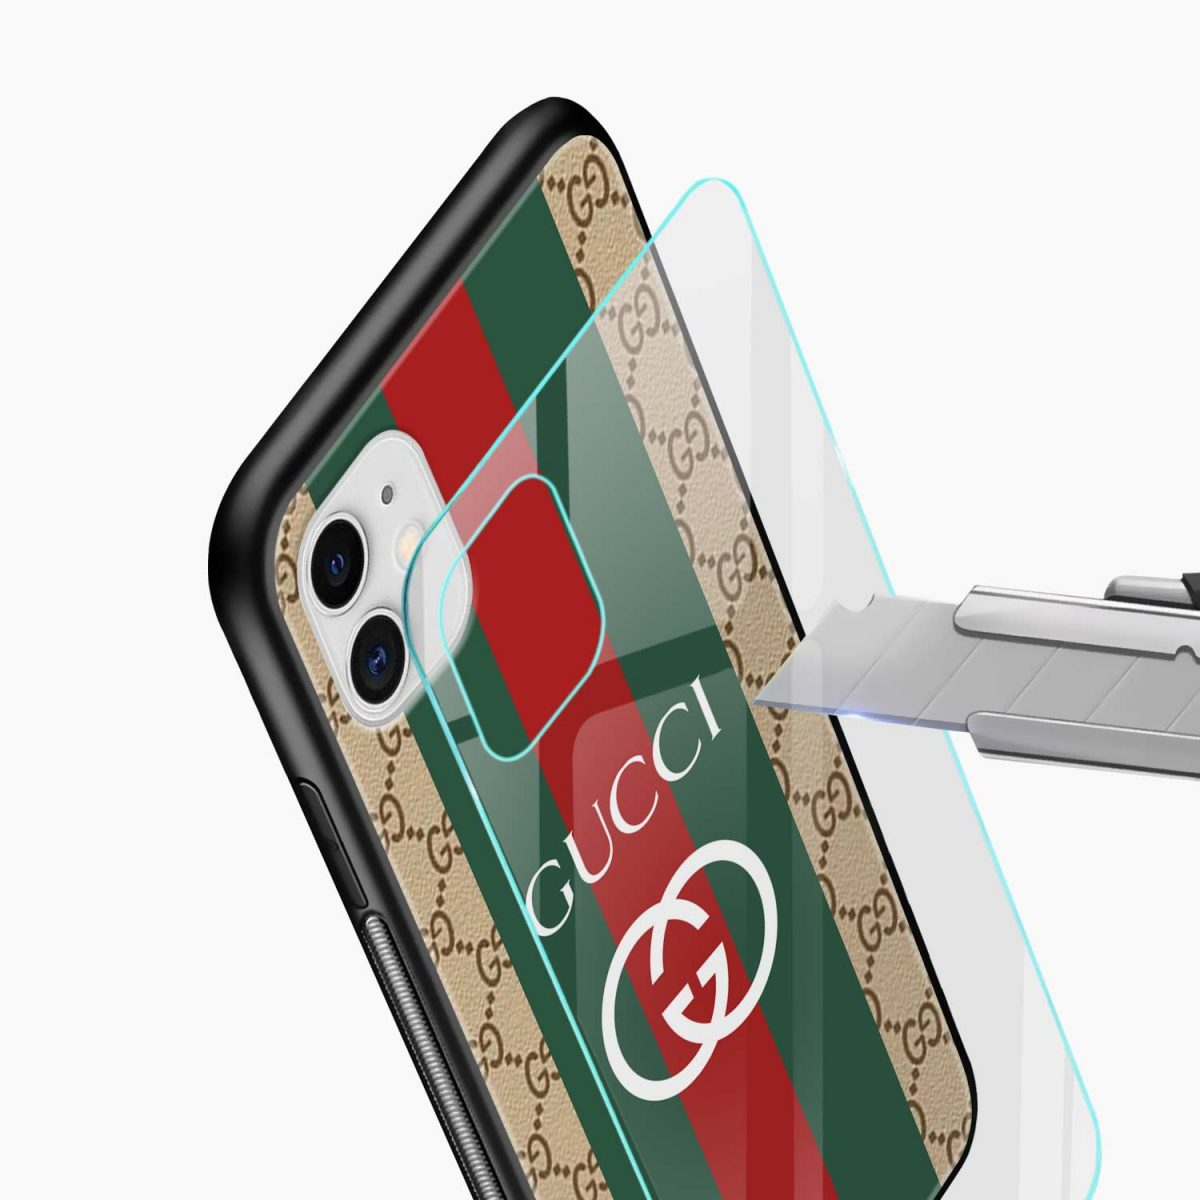 gucci strips pattern iphone back cover glass view